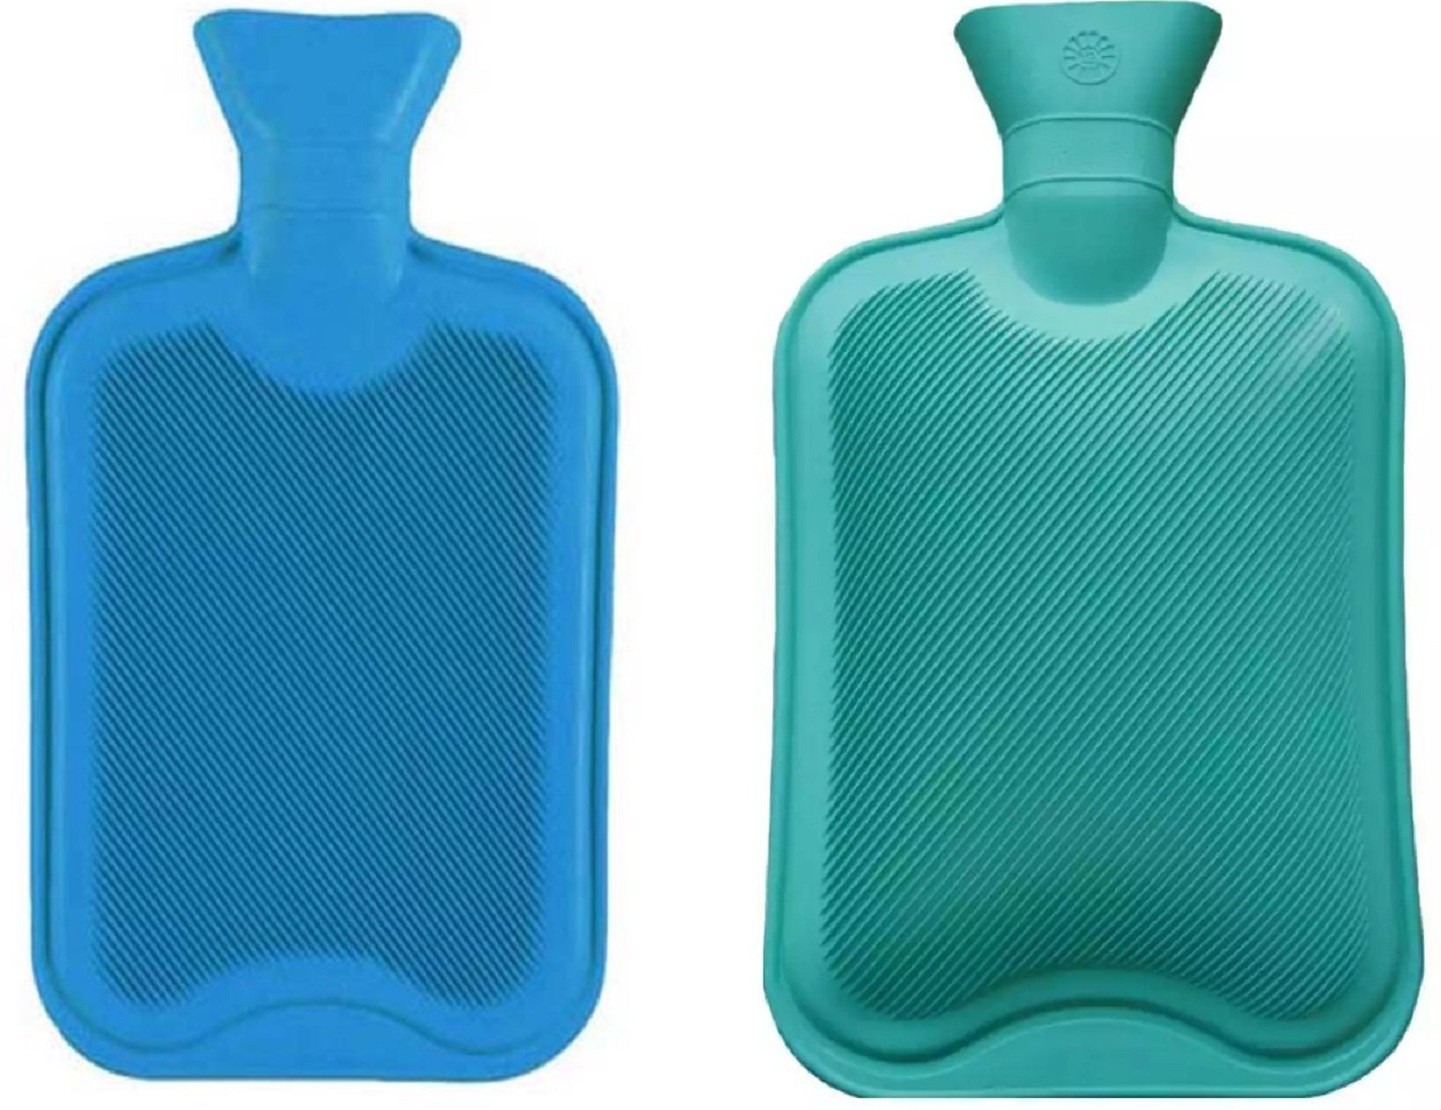 Toolyard Special Combos Non-electrical 3 L Hot Water Bag(Blue, Green)